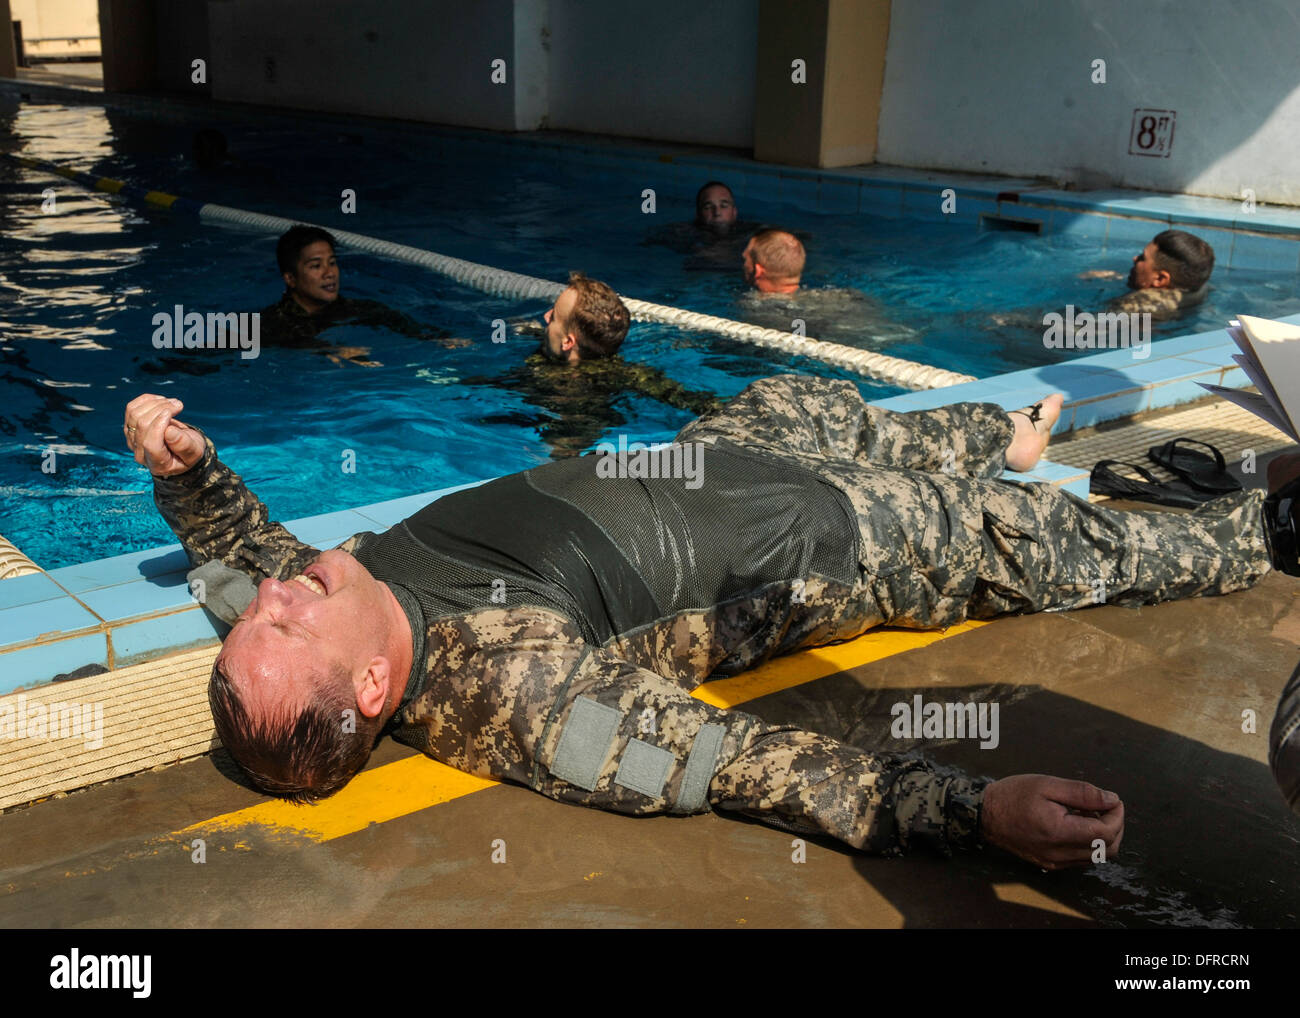 Army Lt. Col. John Warner lies on the ground after completing a relay swim race. Competitors swam one lap of the pool while wea - Stock Image